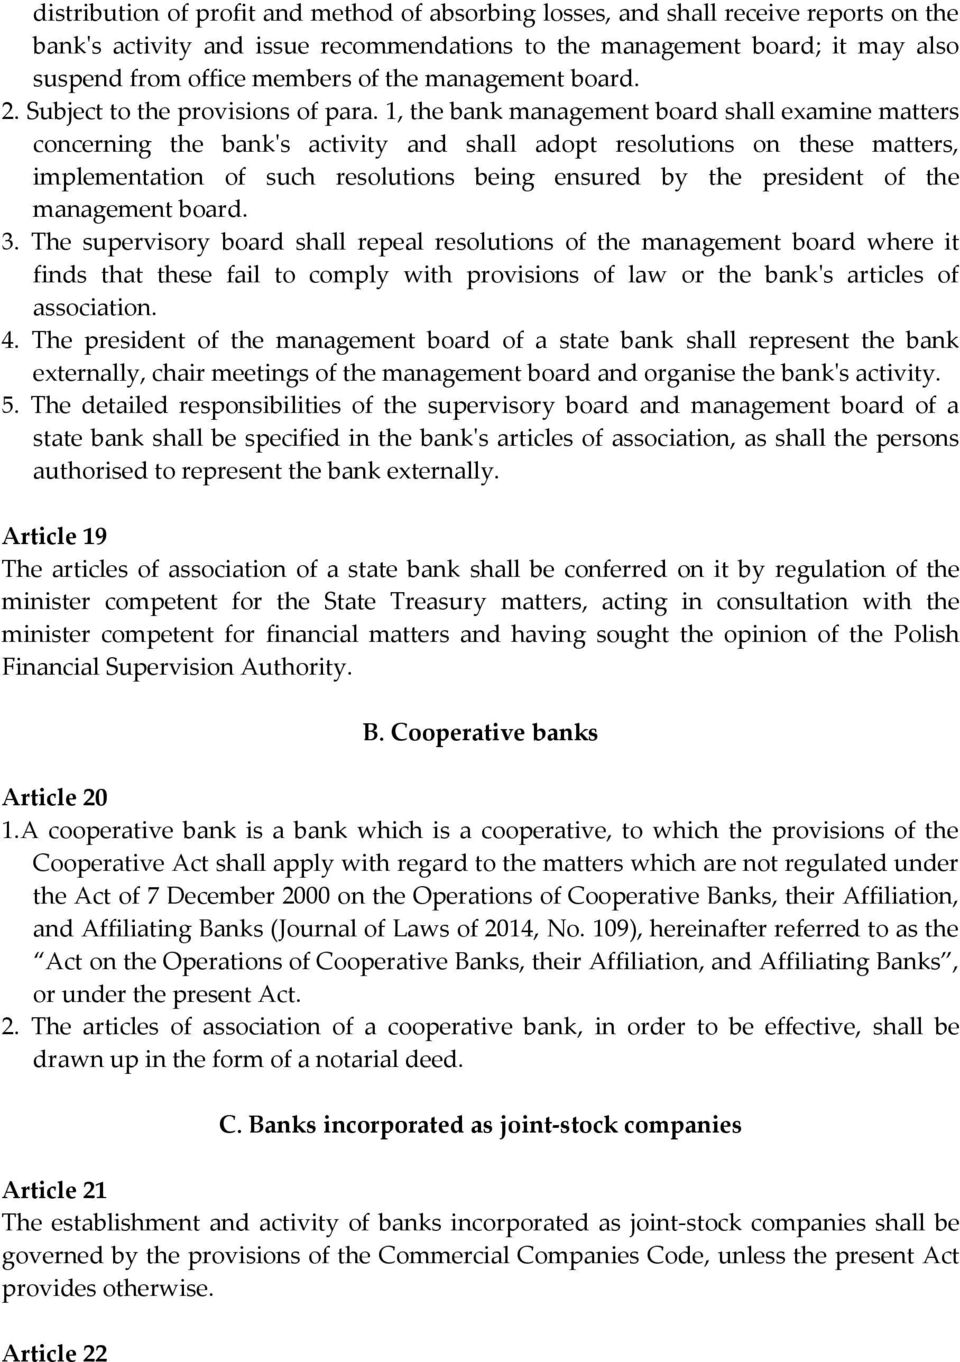 1, the bank management board shall examine matters concerning the bank's activity and shall adopt resolutions on these matters, implementation of such resolutions being ensured by the president of